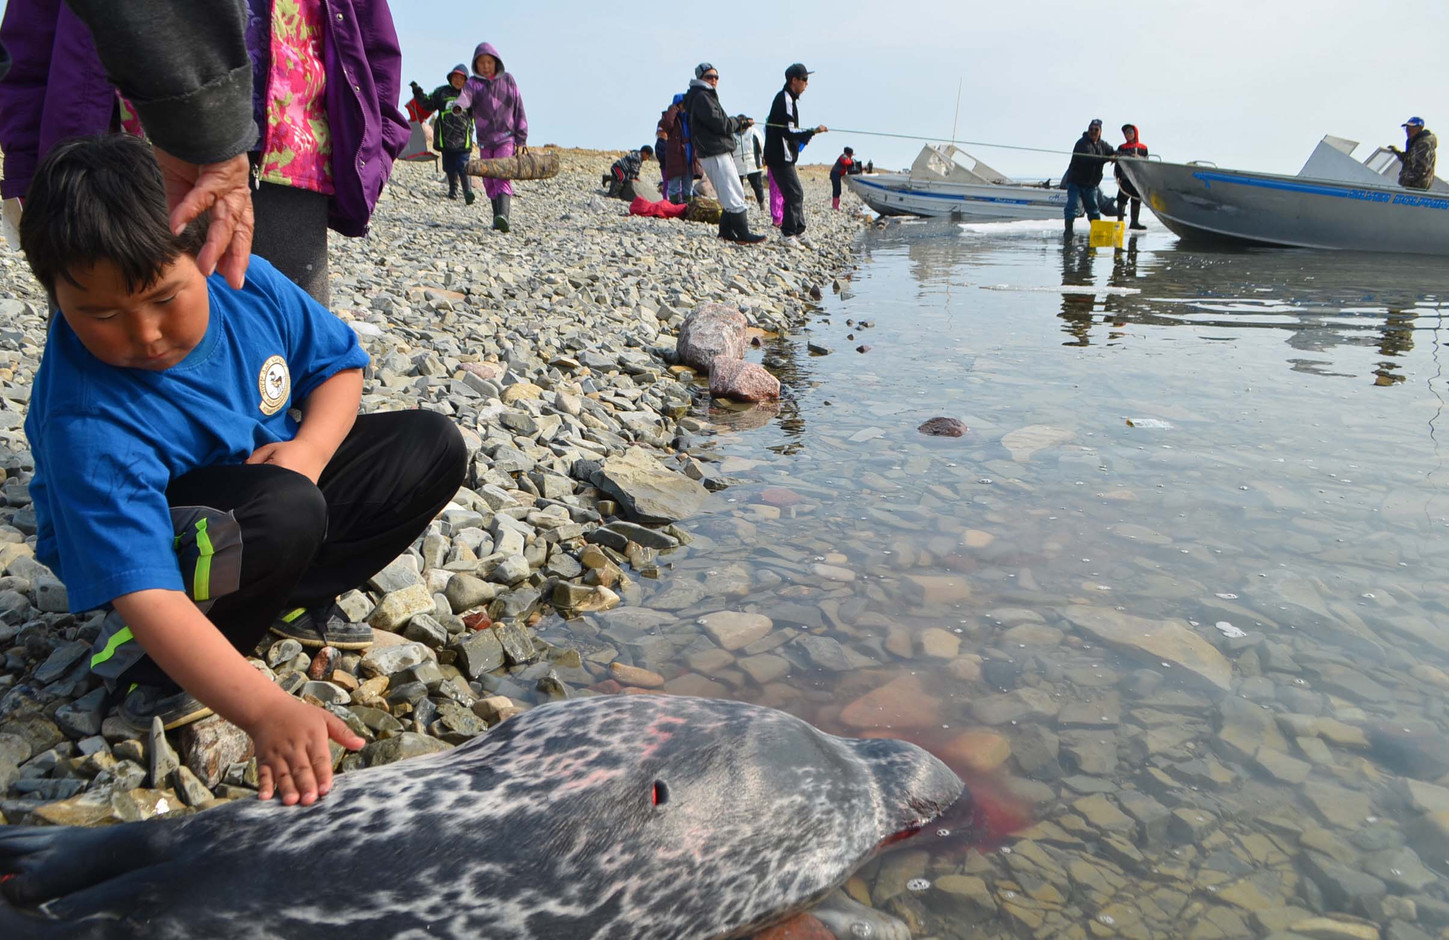 A successful seal hunt at a Cambridge Bay knowledge transfer camp. Photo by Brendan Griebel.